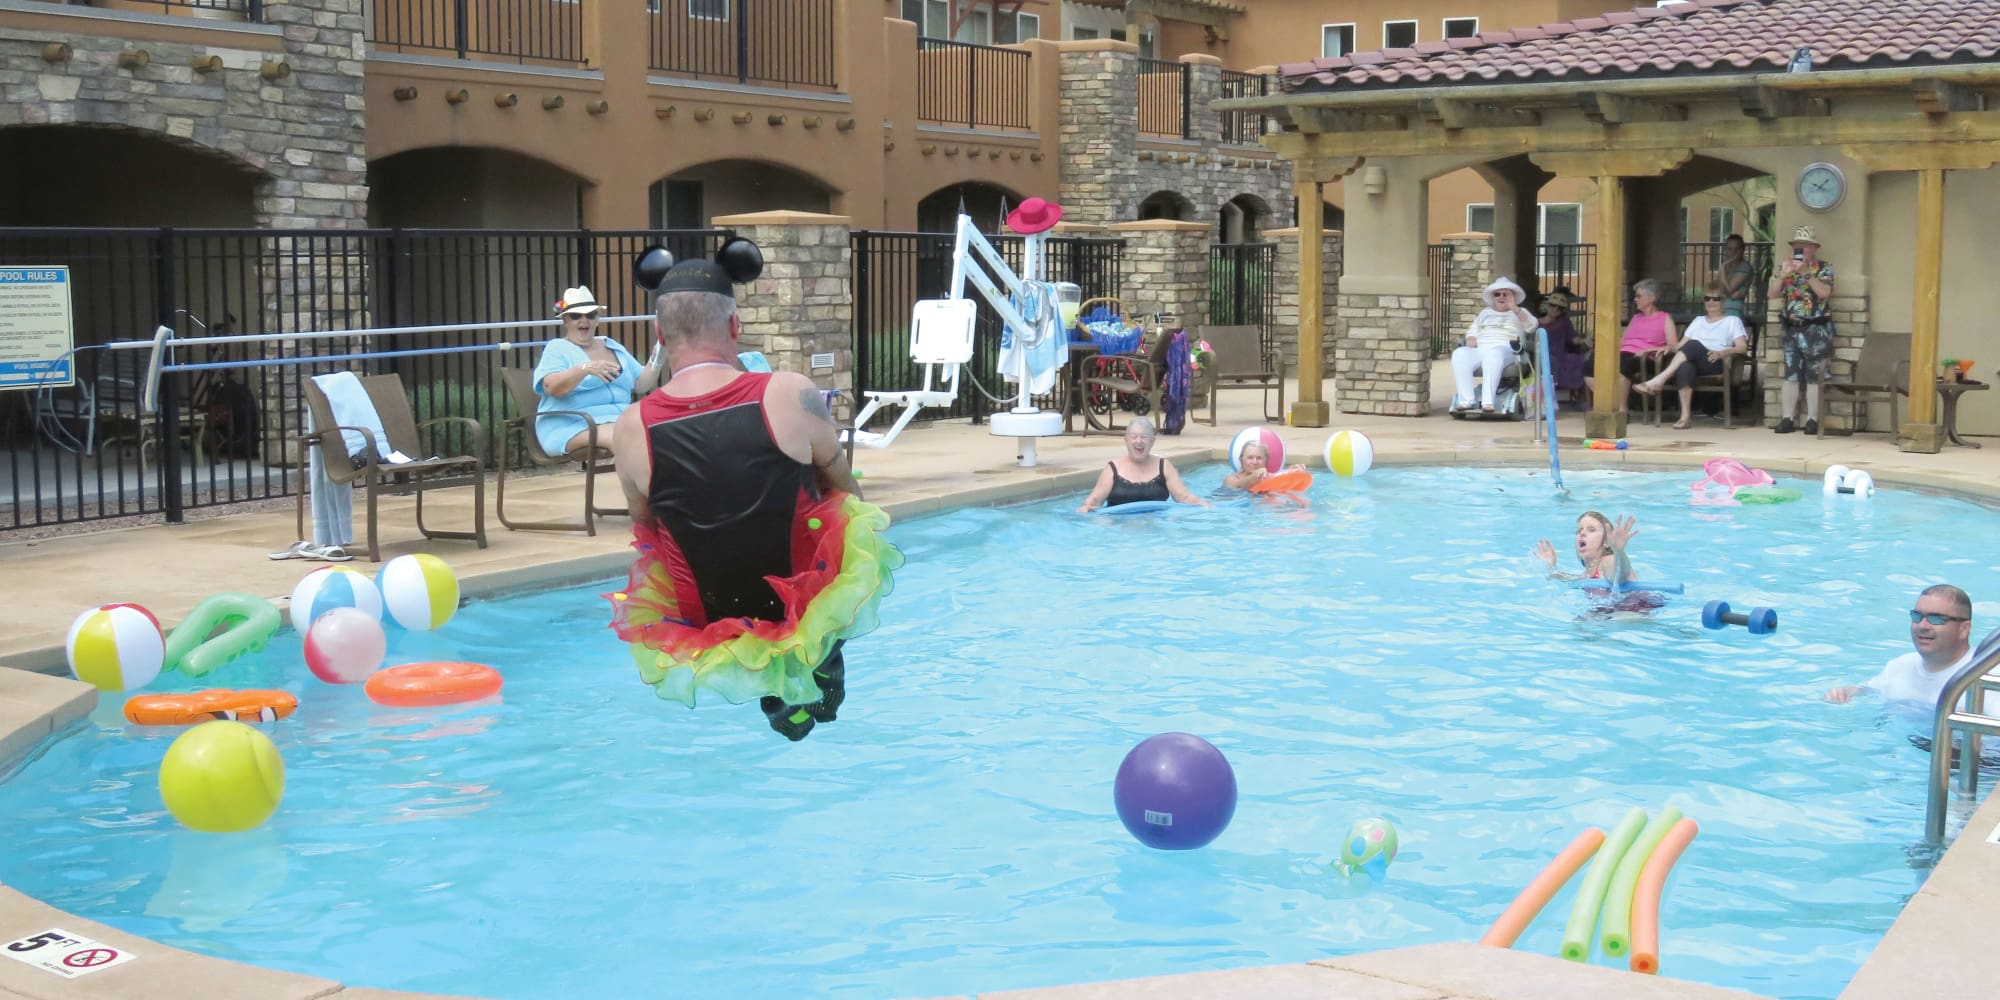 A resident dressed as mickey mouse jumping into the pool at Desert Springs Gracious Retirement Living in Oro Valley, Arizona